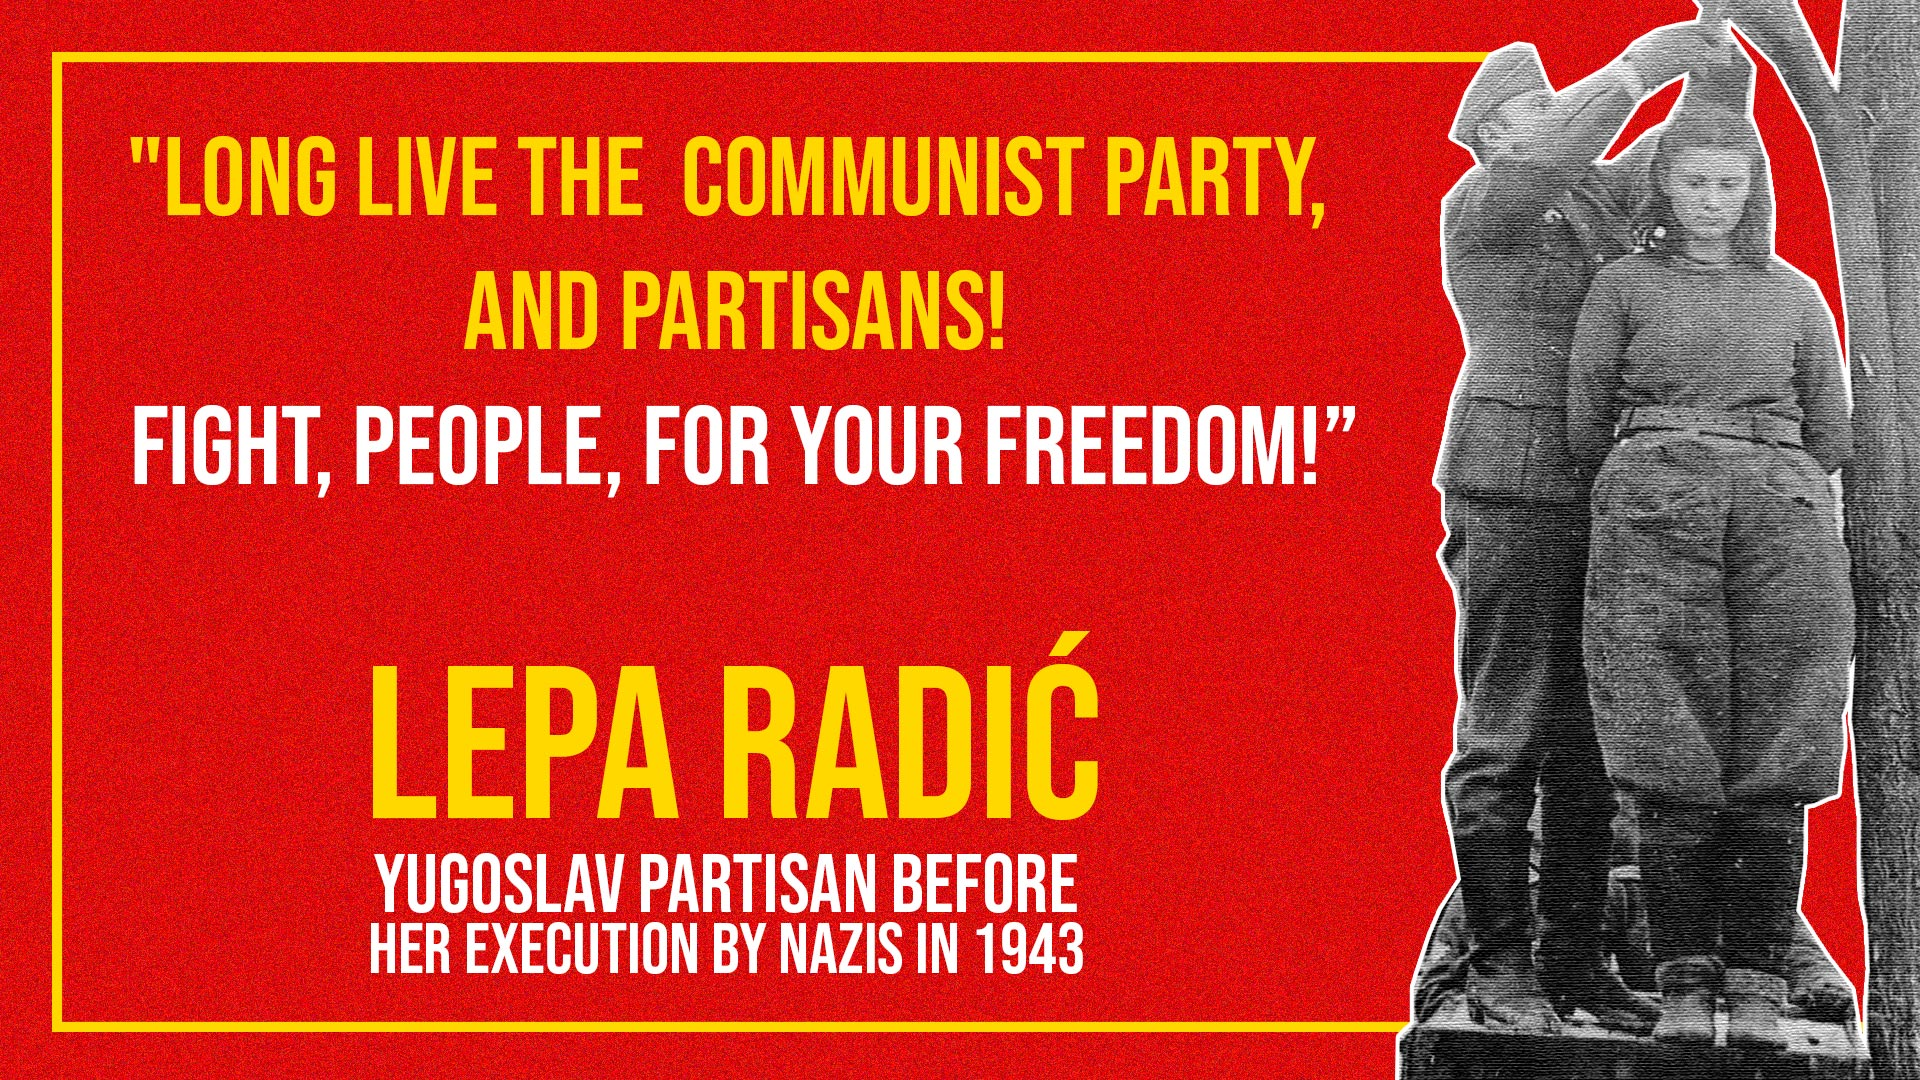 Lepa Radić_ Communist Yugoslav Partisan_World War II